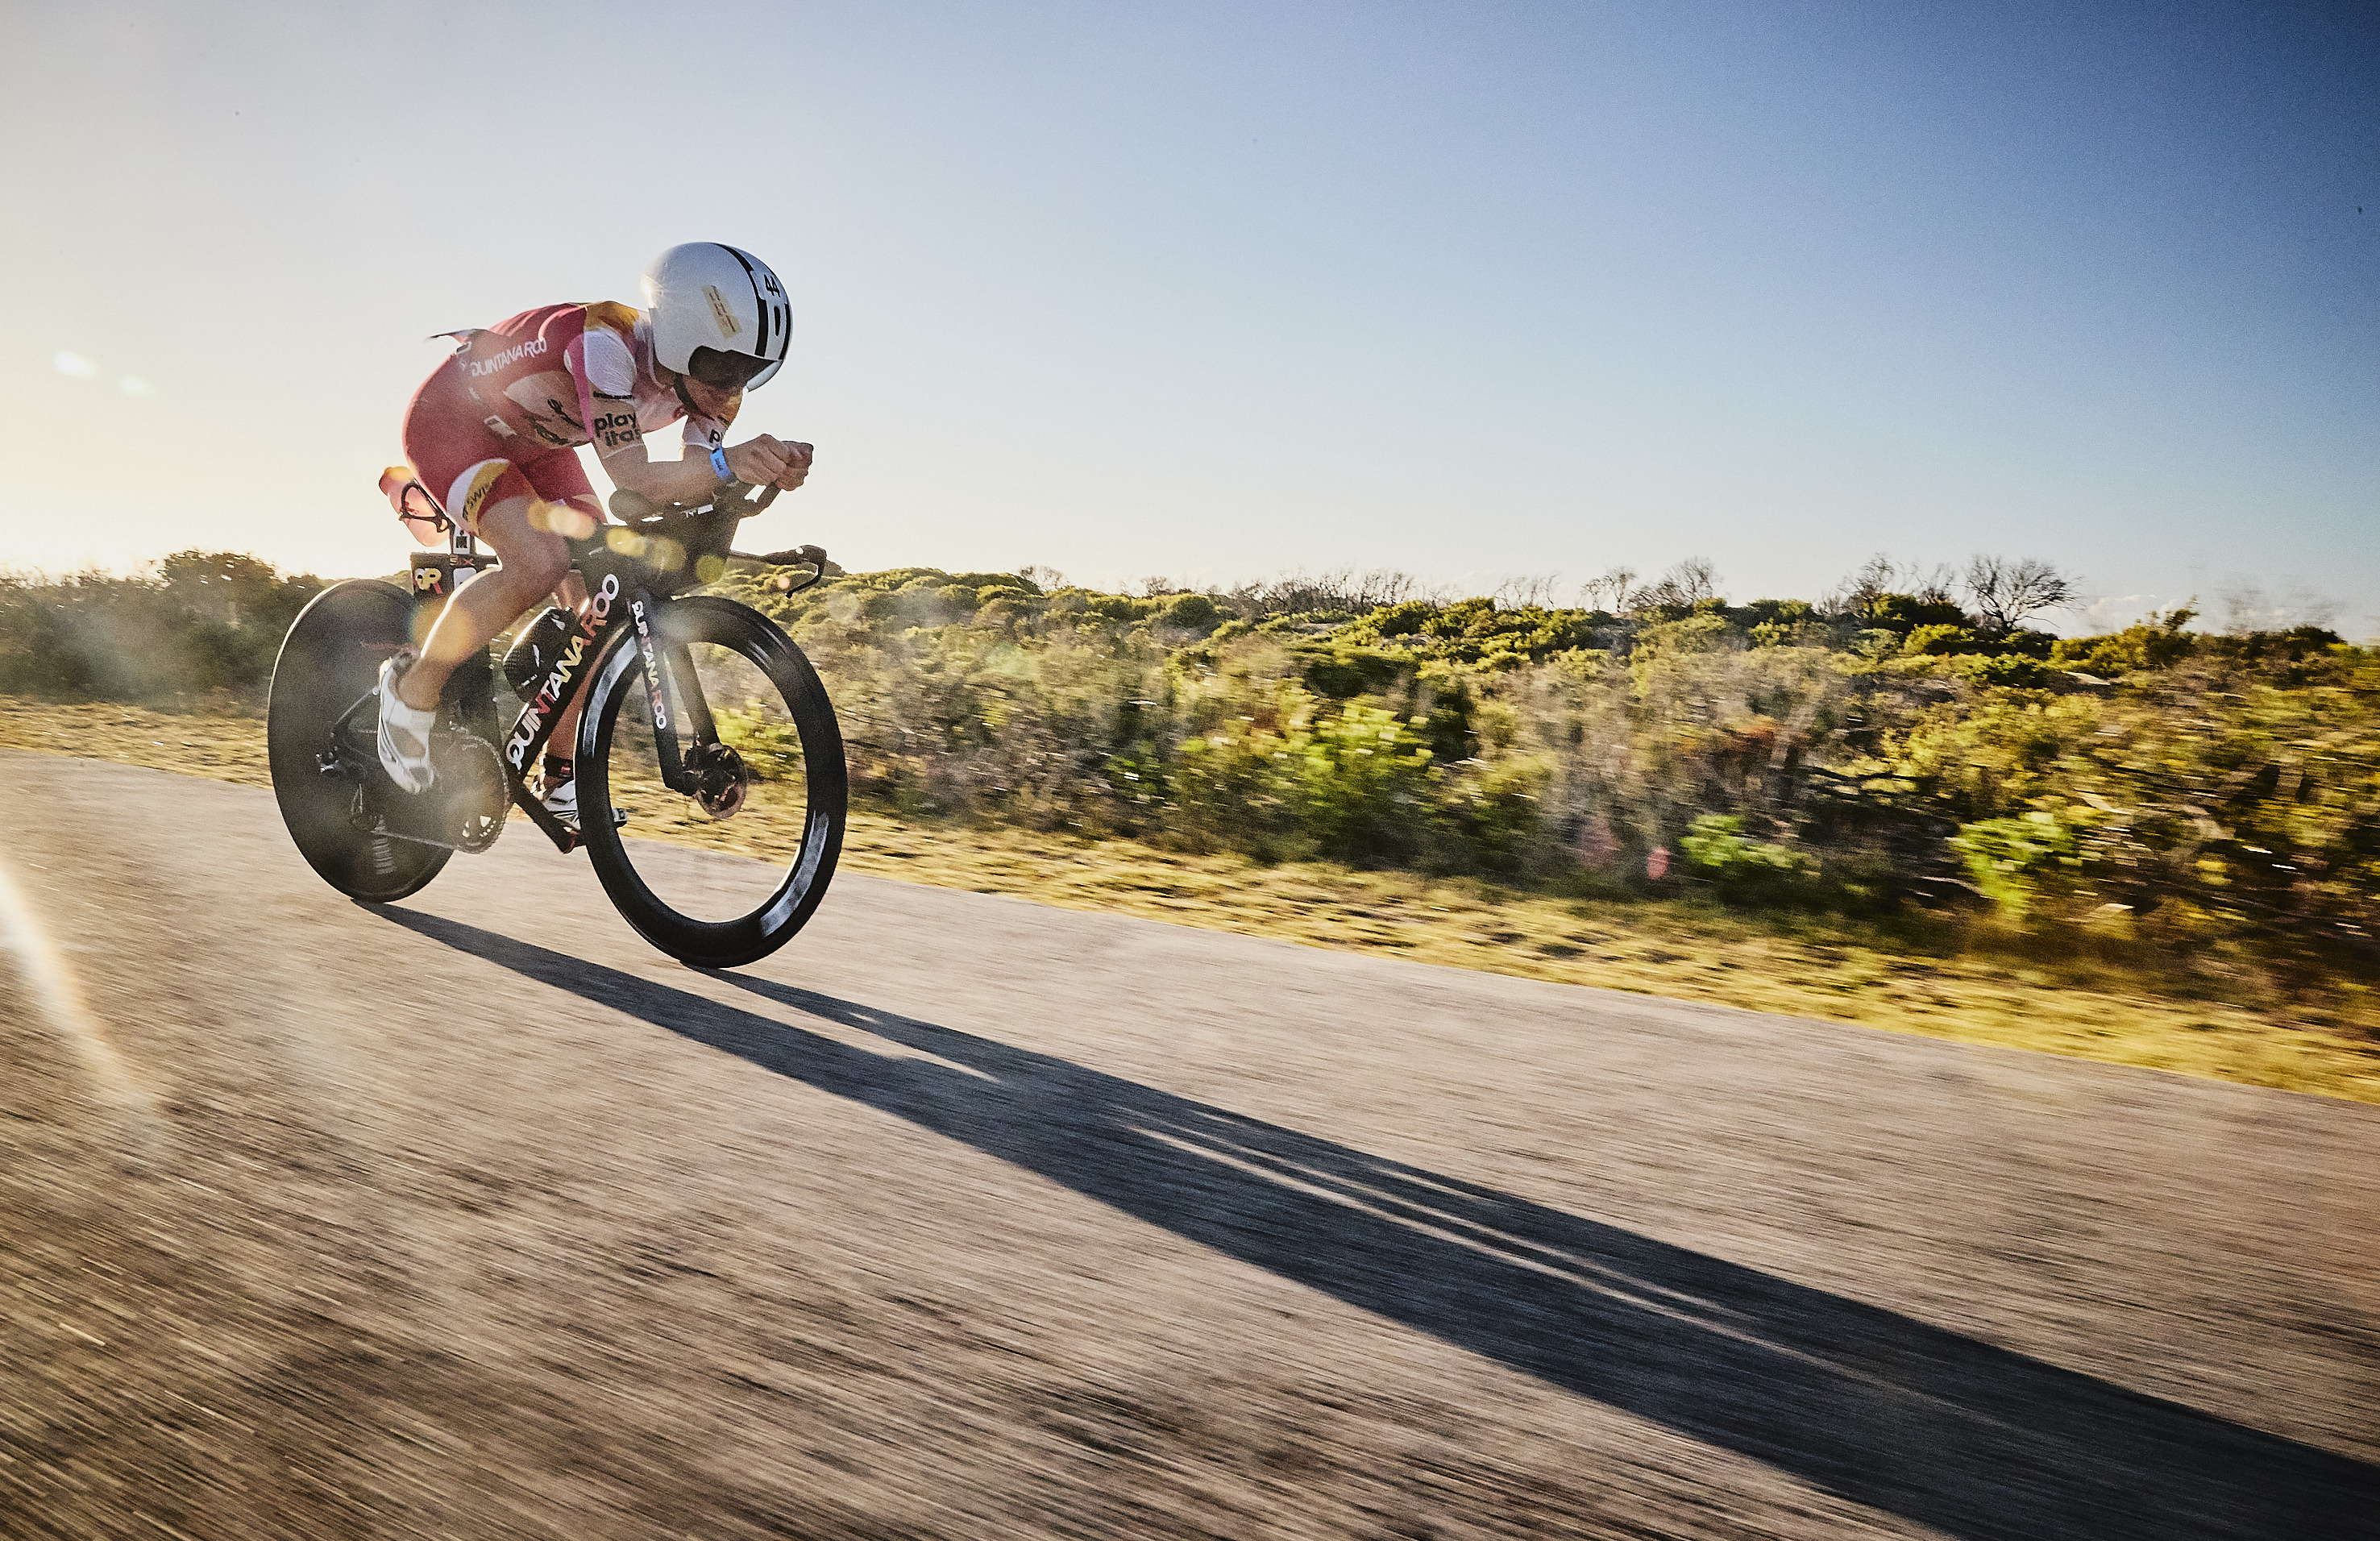 3rd out on the bike at Ironman South Africa